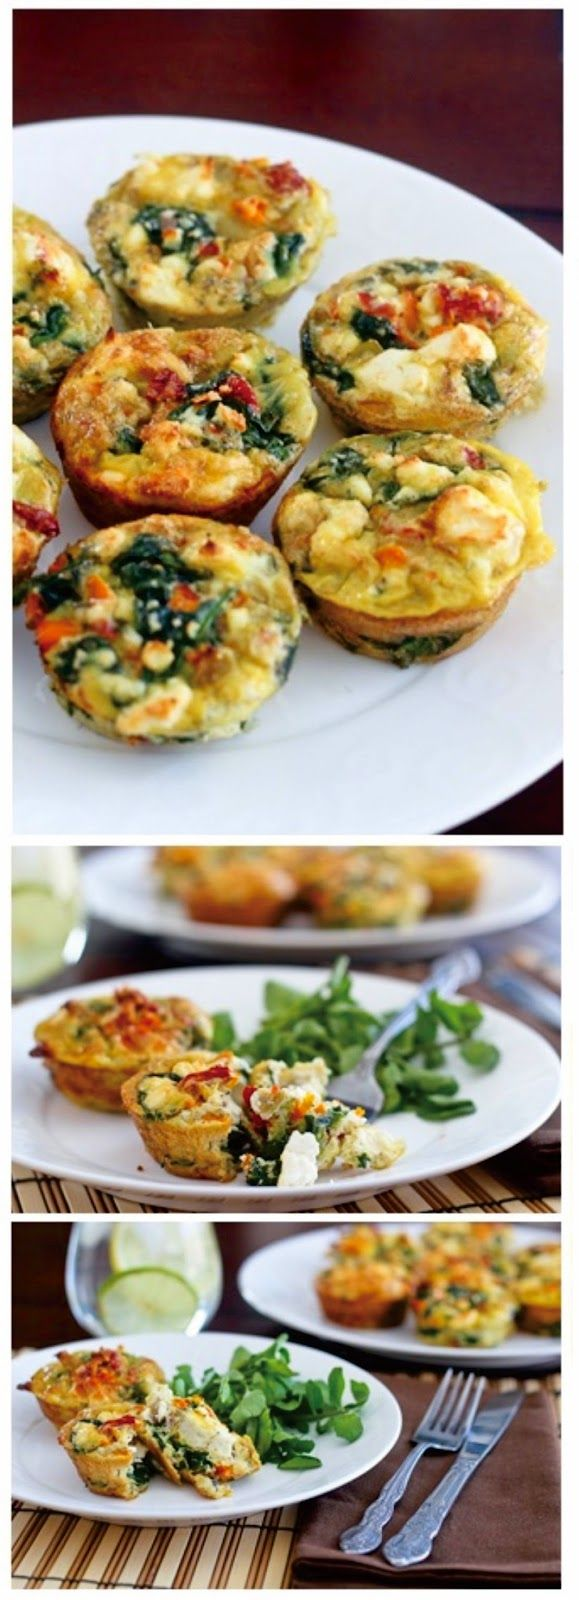 Spinach, Sundried Tomatoes and Feta Frittata Bites ...